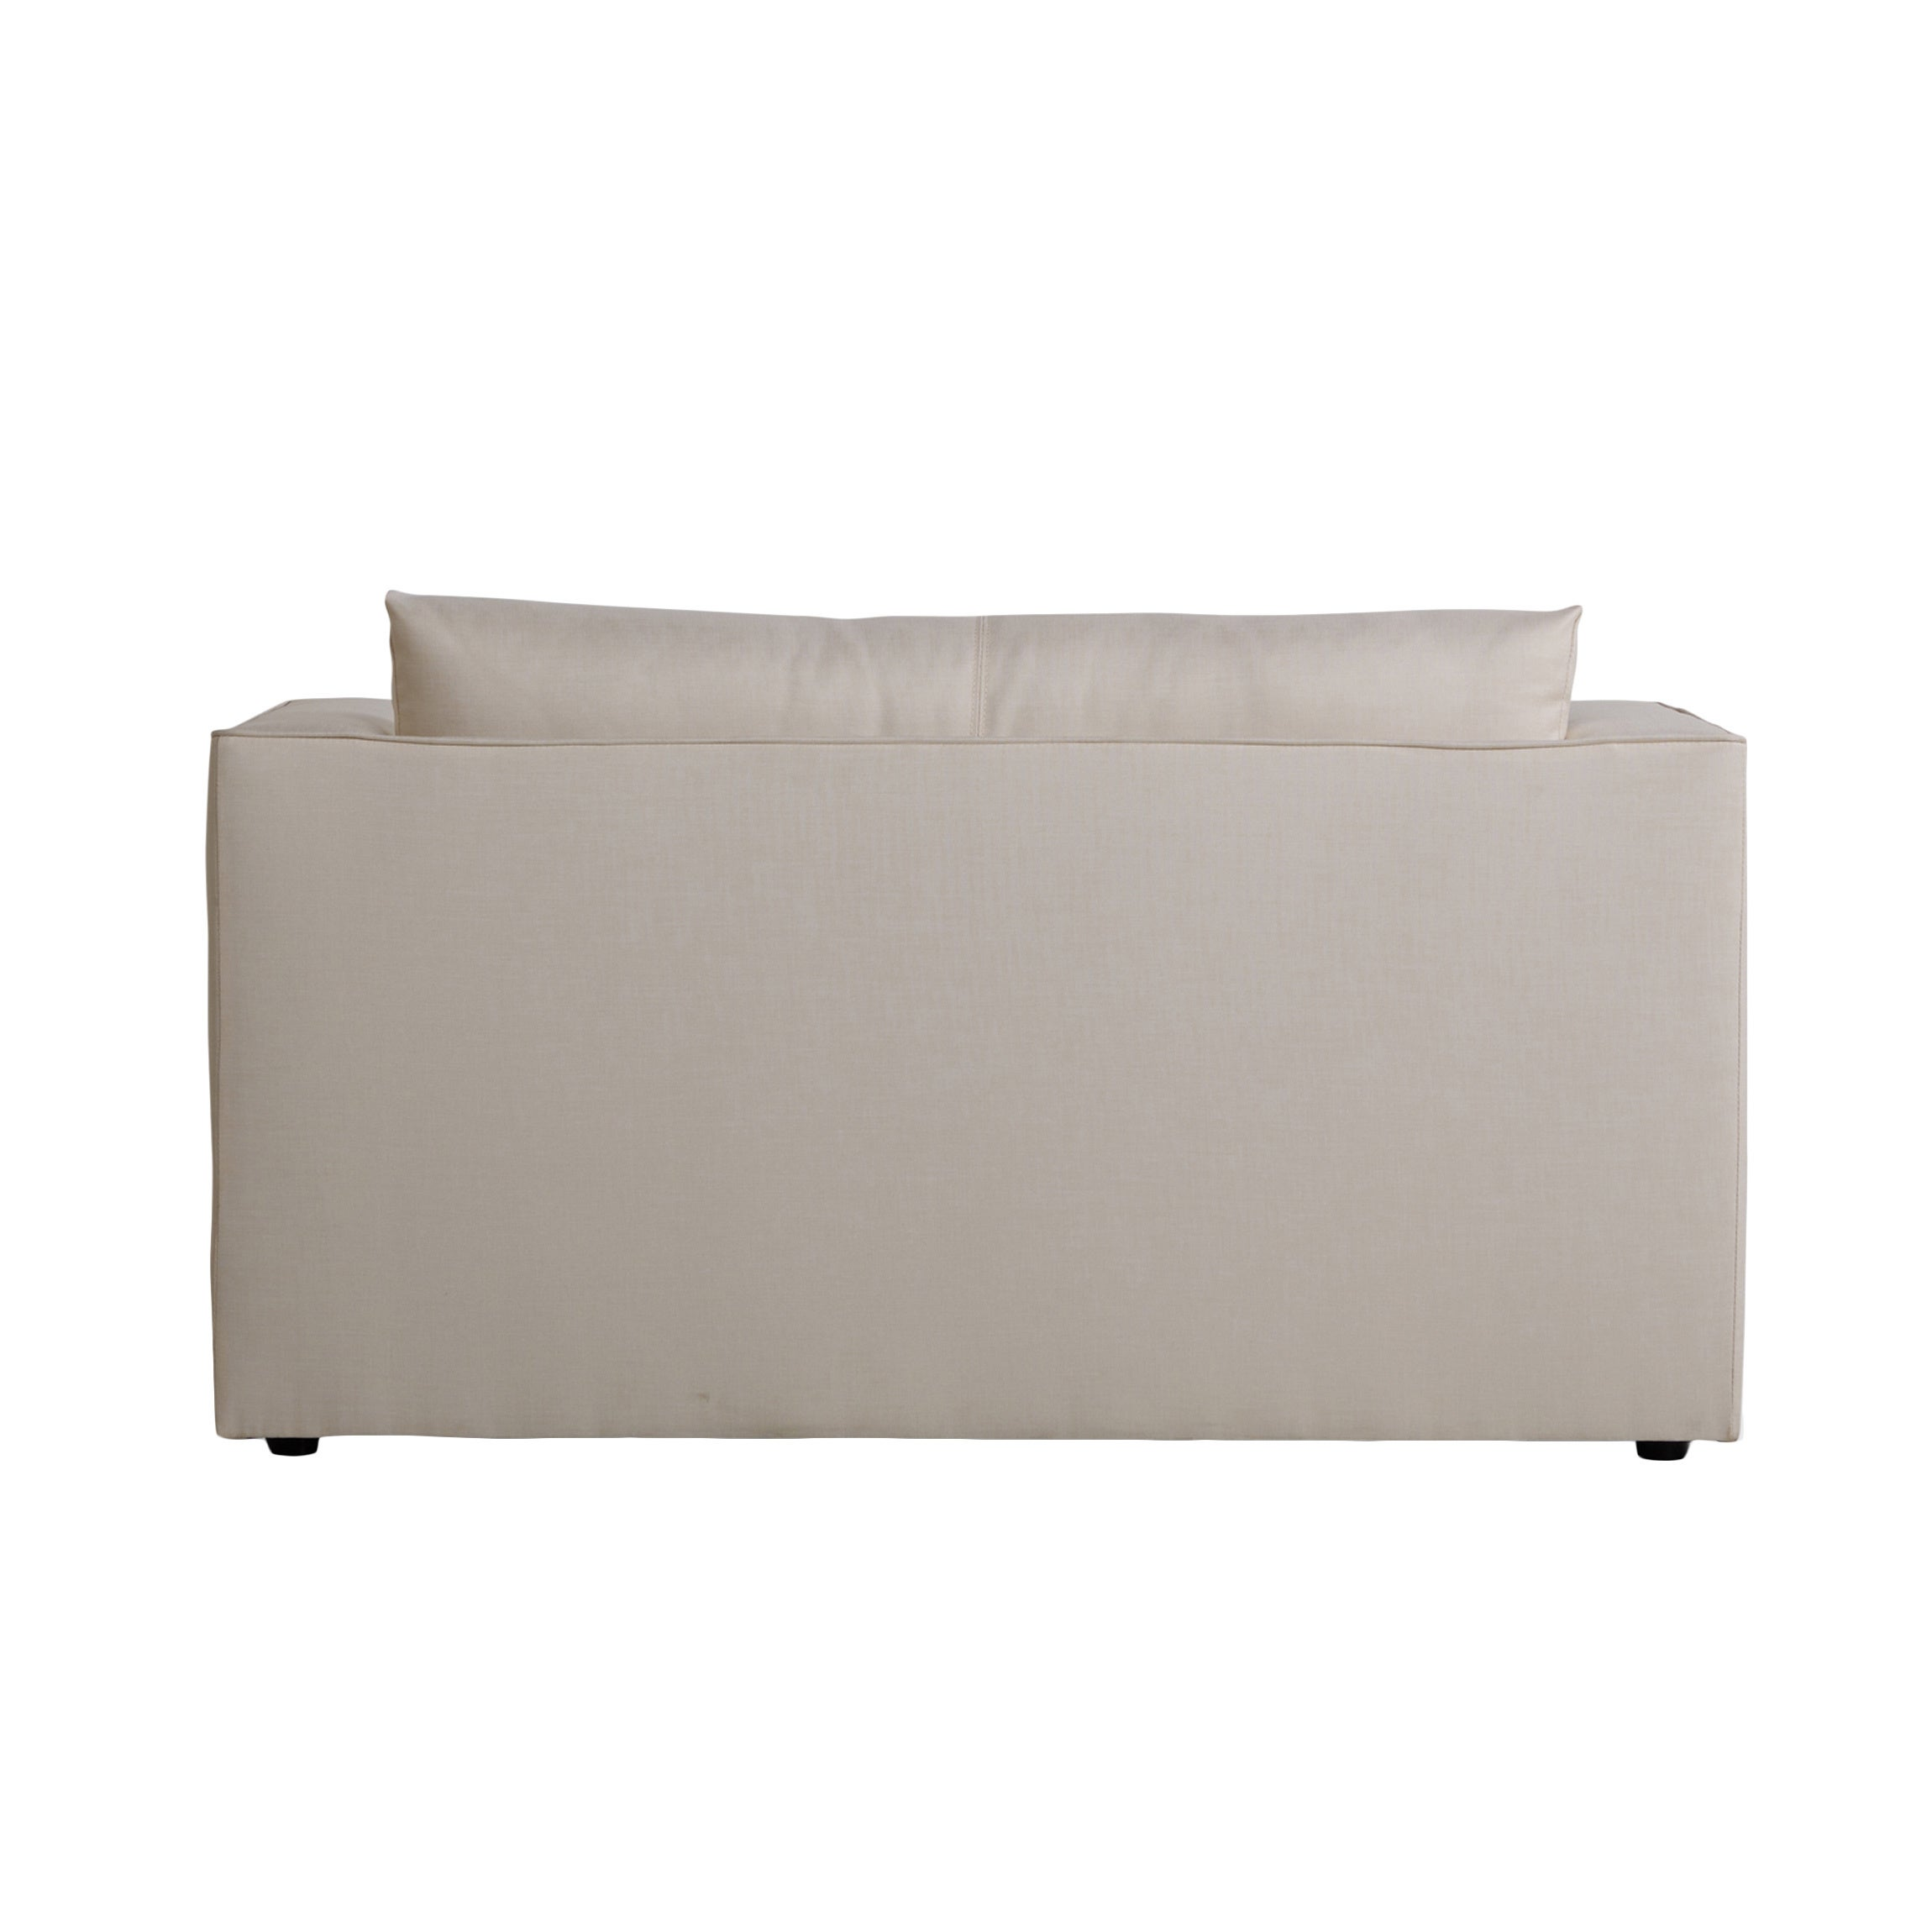 Corona Beige Convertible Loveseat Sleeper Free Shipping Today 10168452